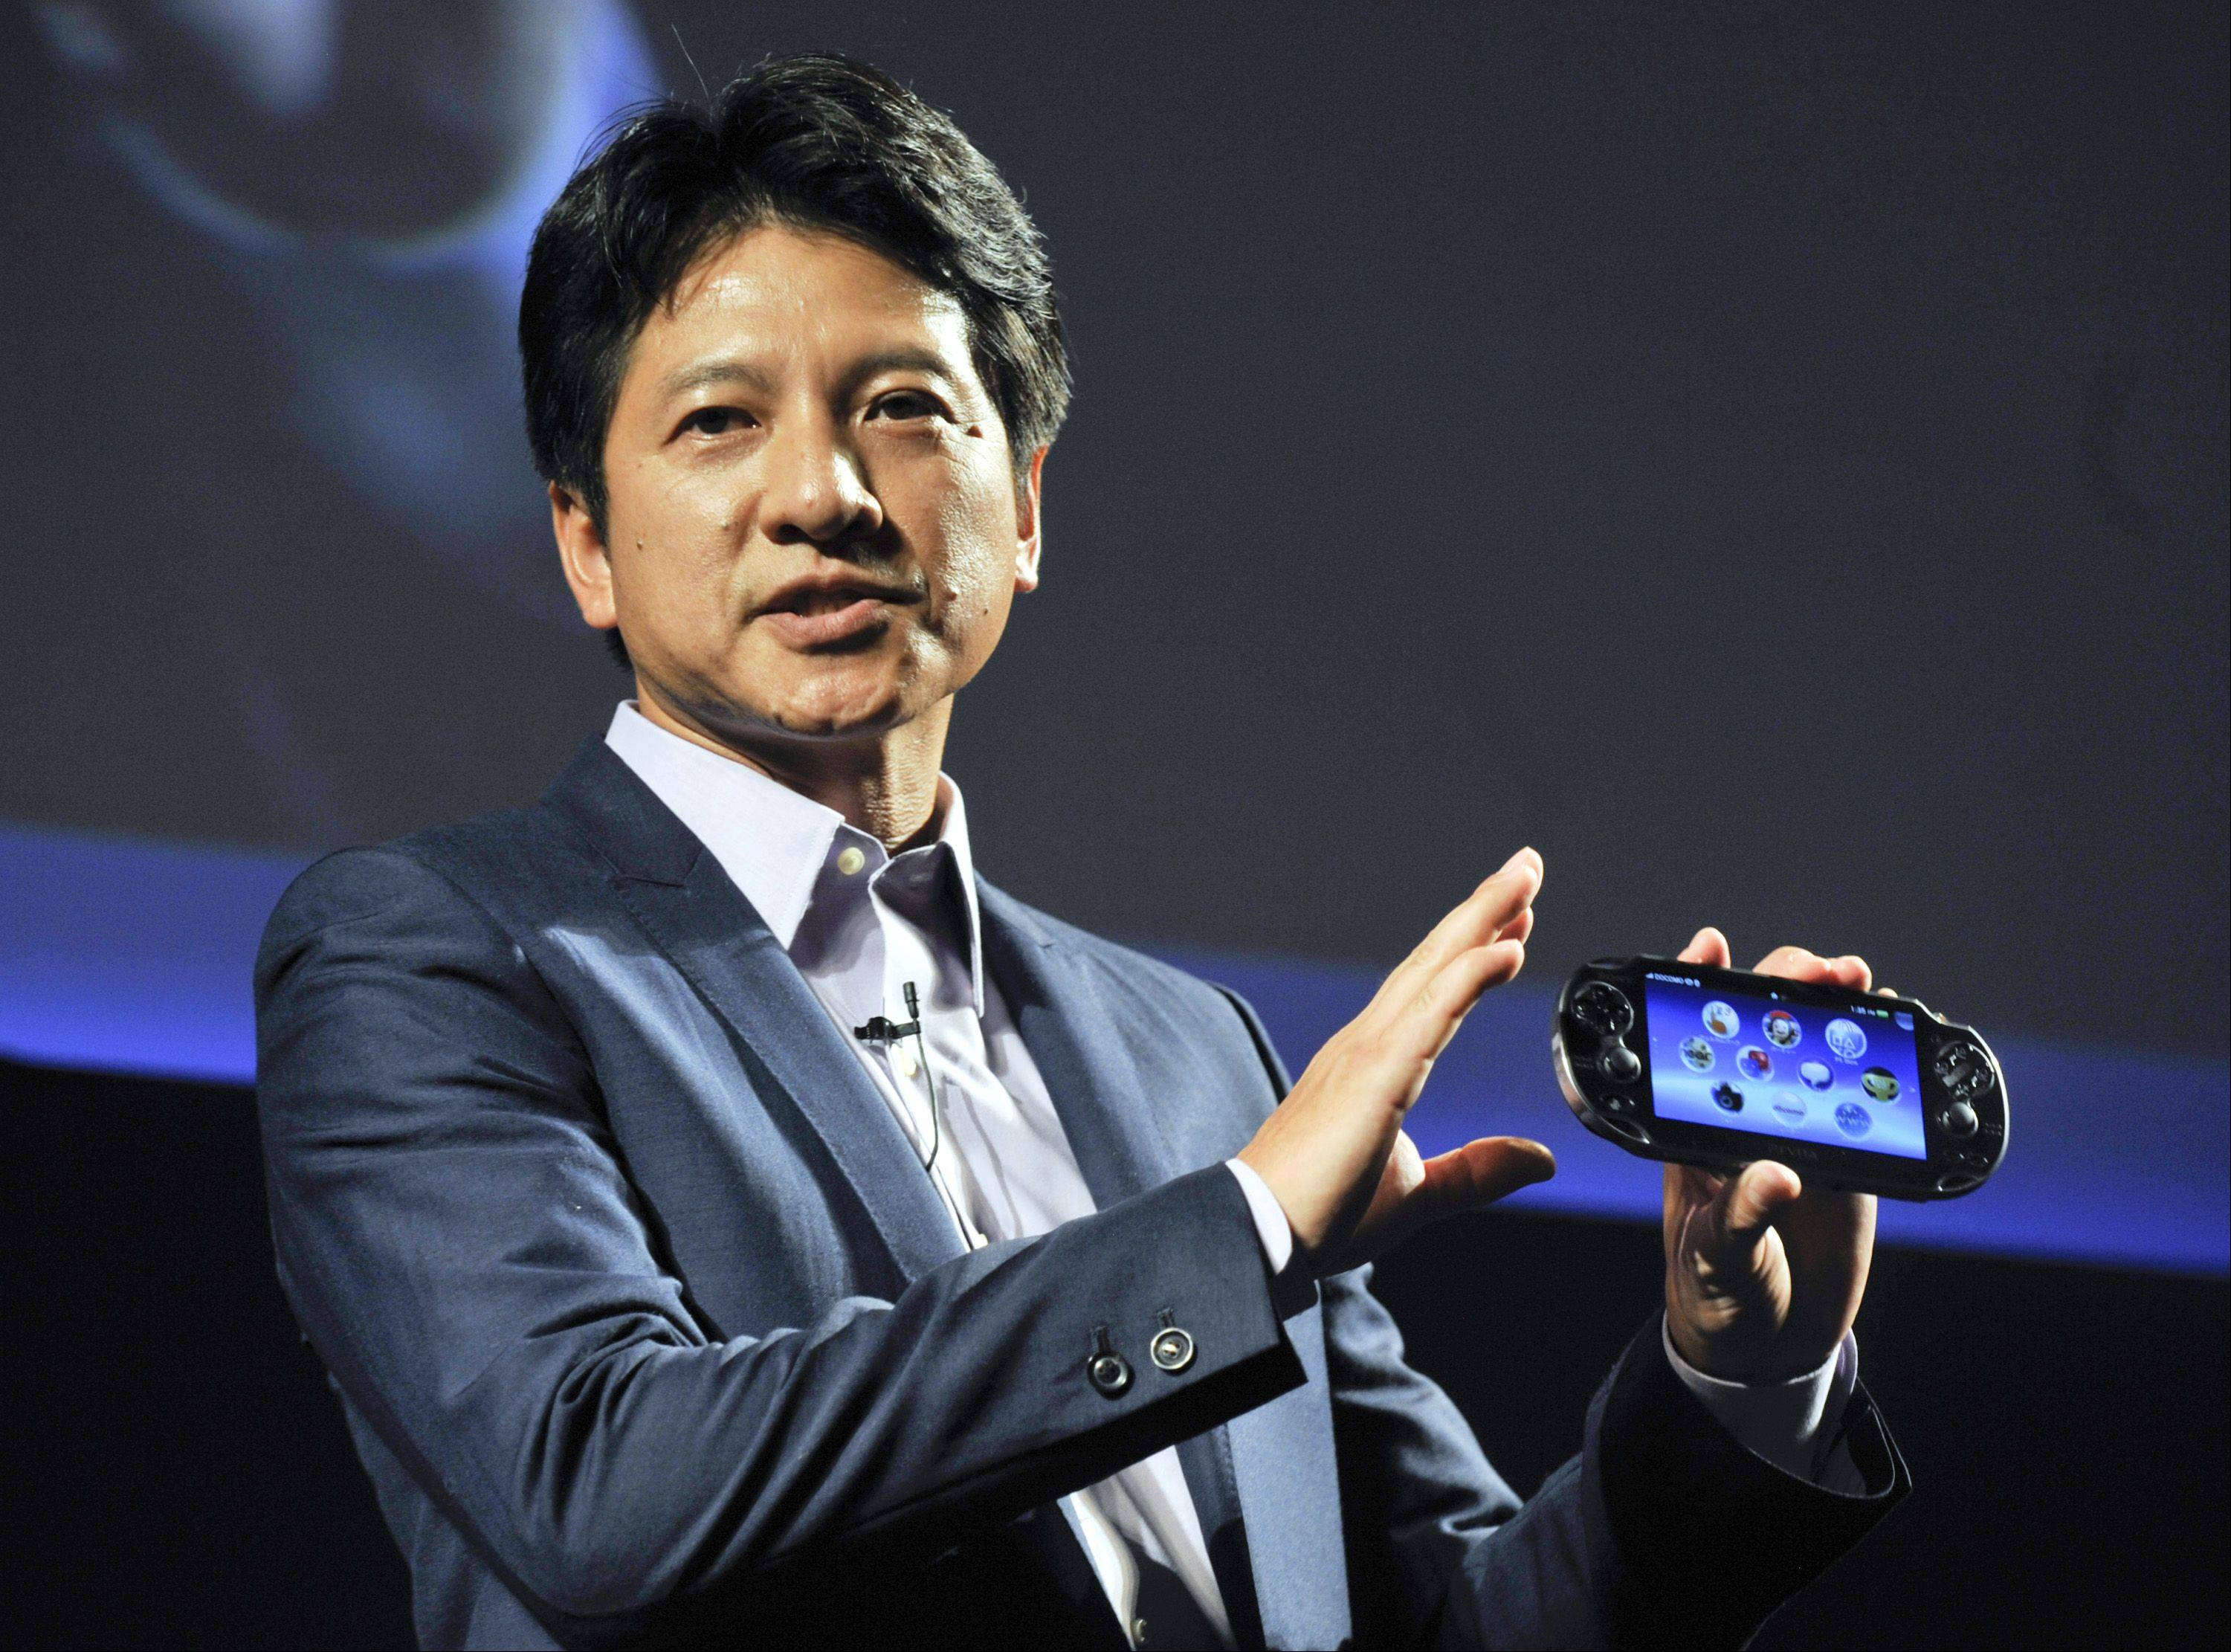 Hiroshi Kawano, president of Sony Computer Entertainment Japan, displays the PlayStation Vita portable video game player as he speaks at a news conference in Tokyo on Wednesday.